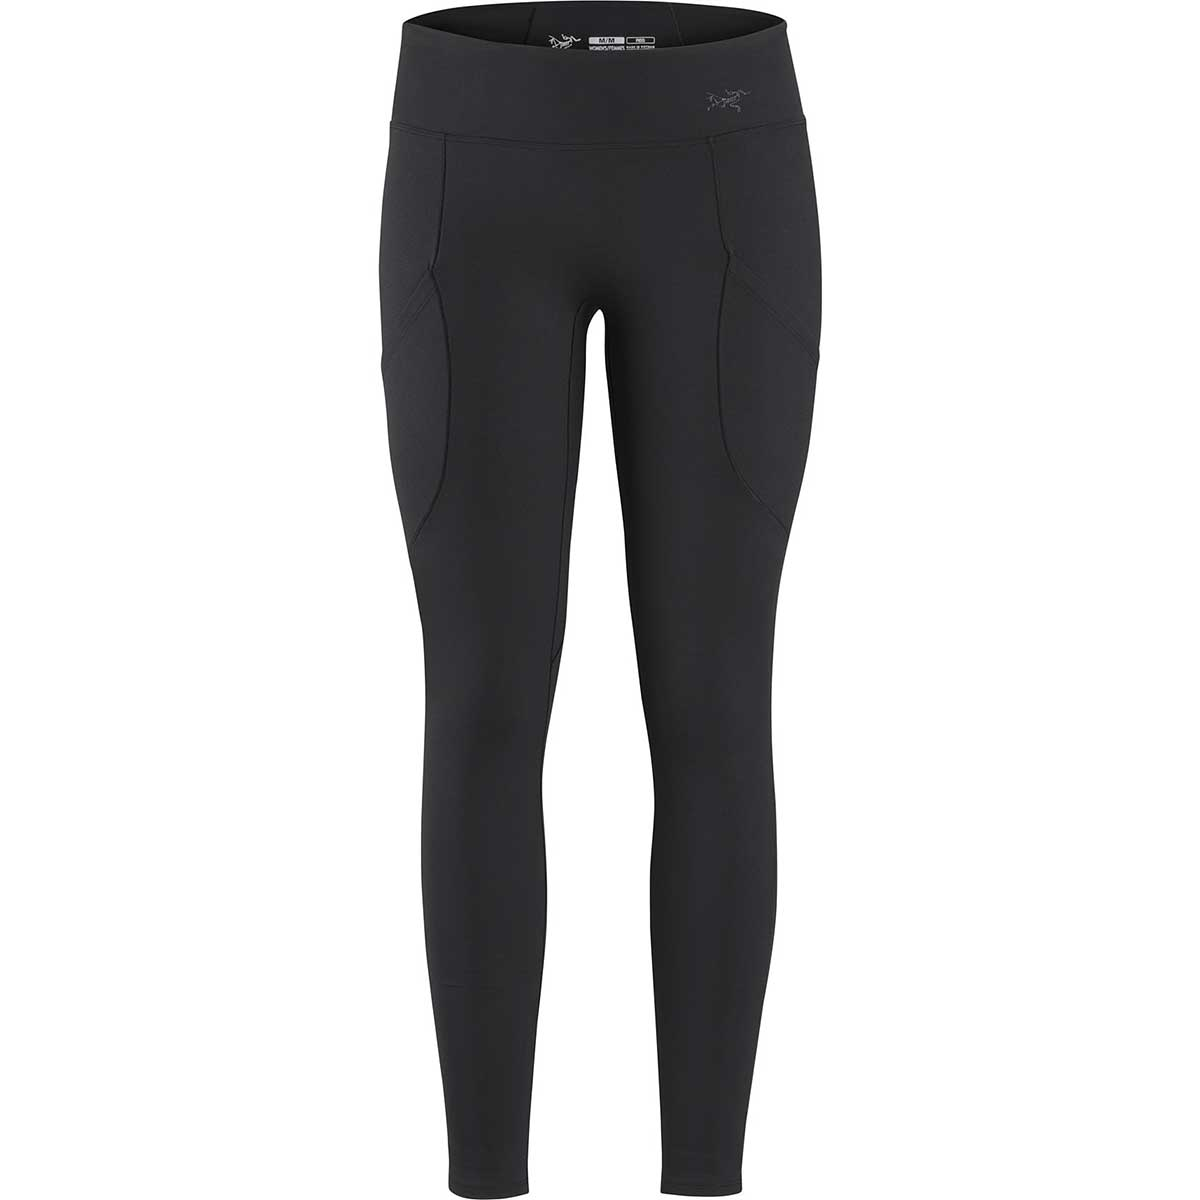 Arcteryx women's Delaney Legging in Black front view